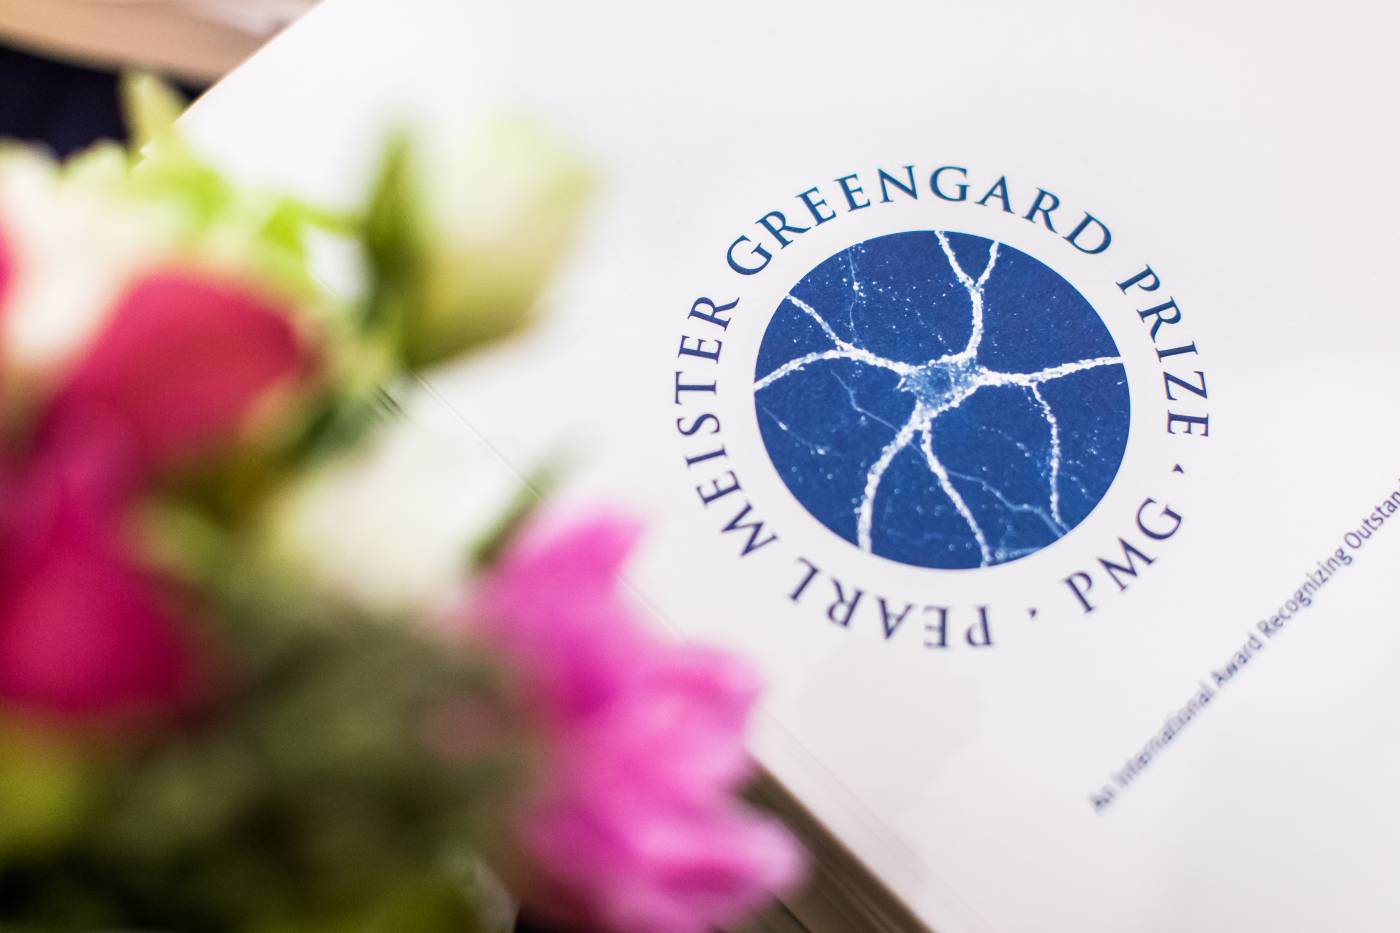 Pearl Meister Greengard Prize logo printed on paper, out of focus flower on left